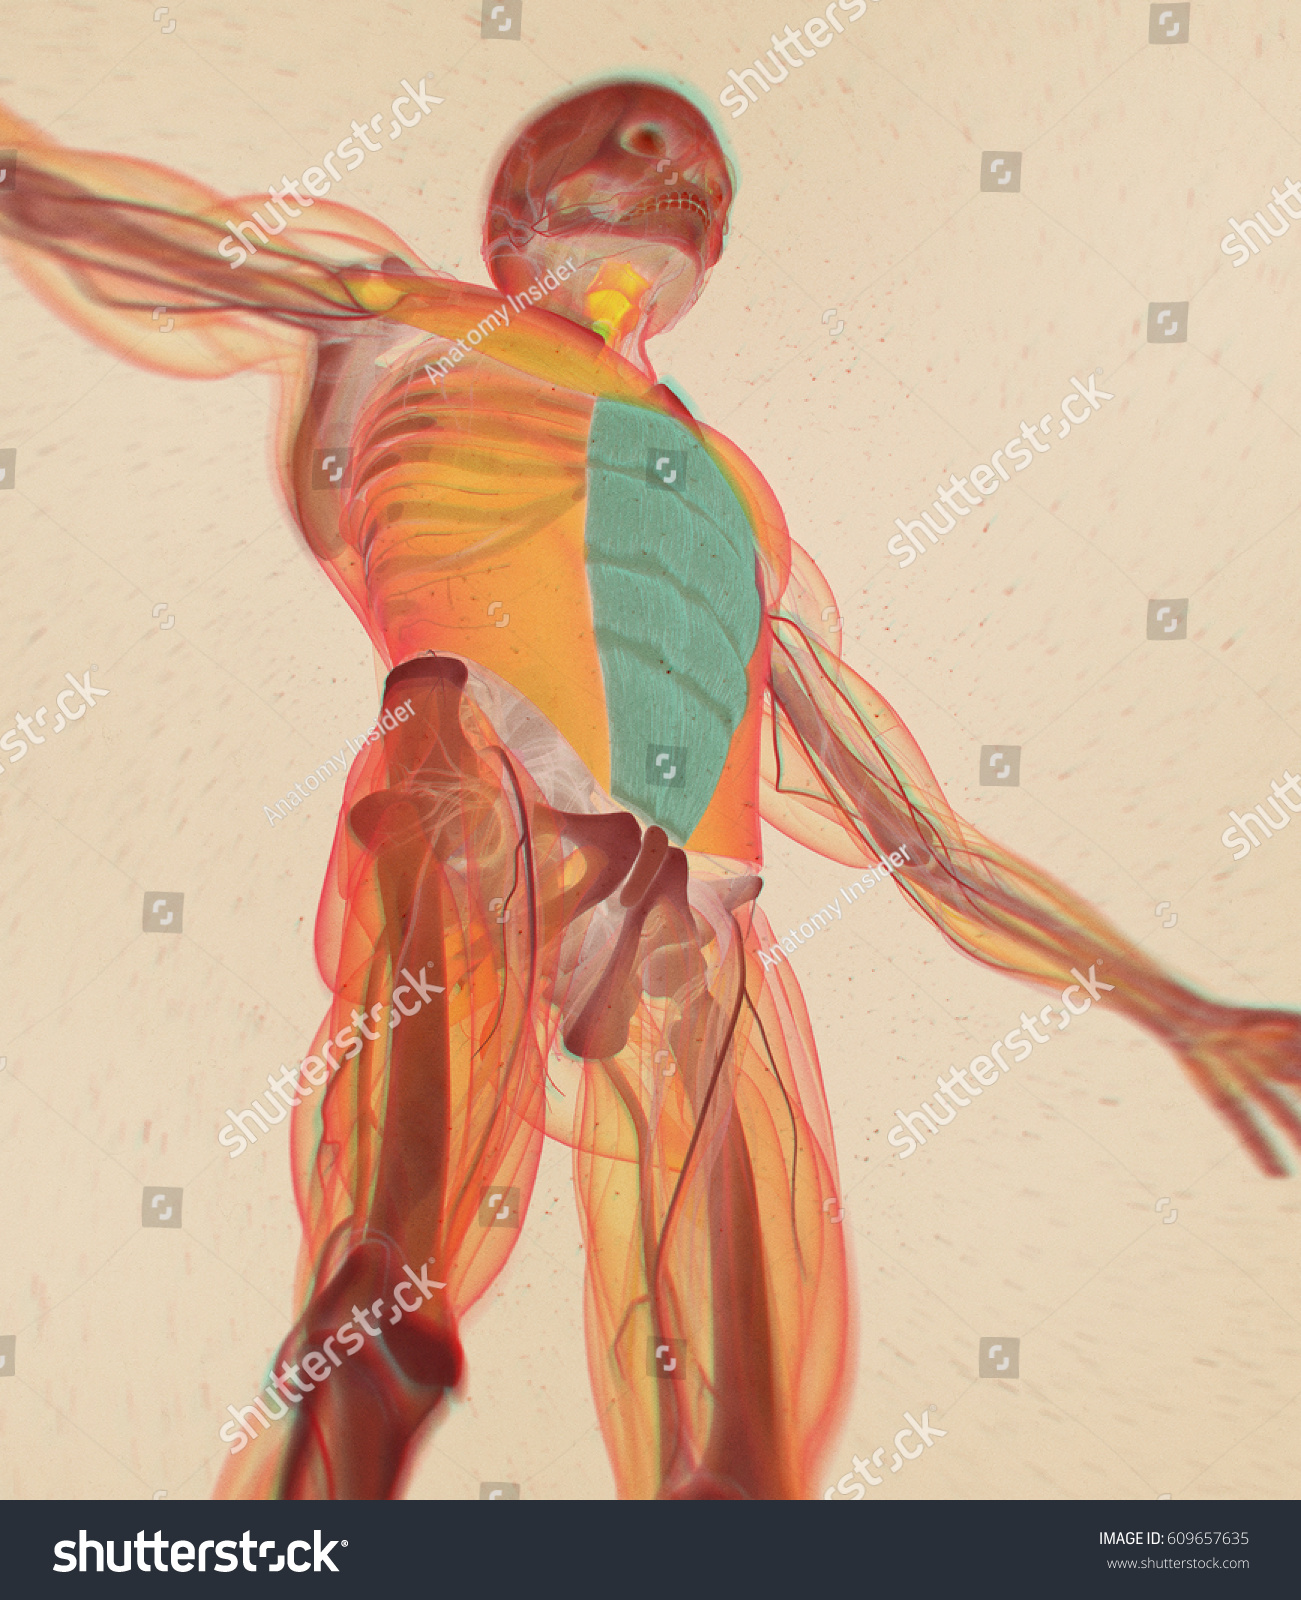 Royalty Free Stock Illustration Of Rectus Abdominus Stomach Muscles